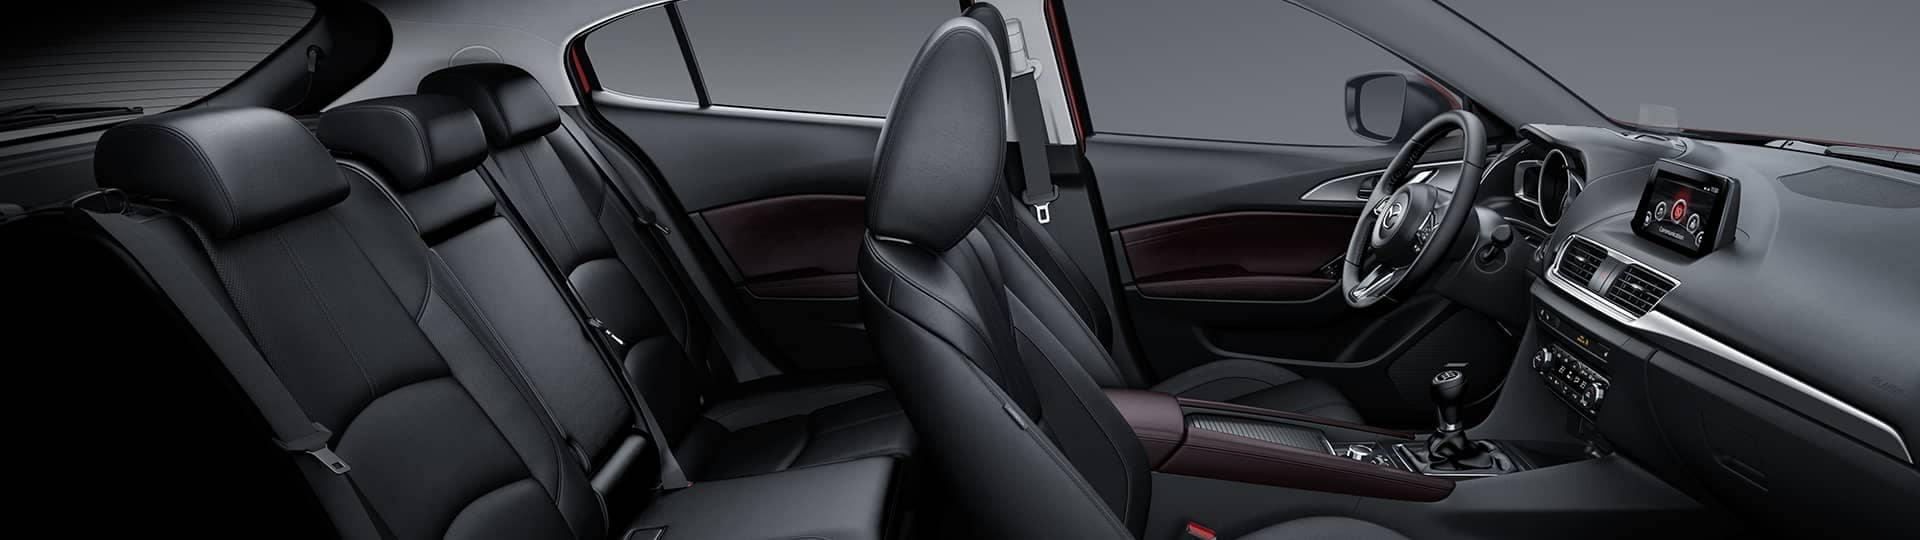 2018 Mazda3 interior side view